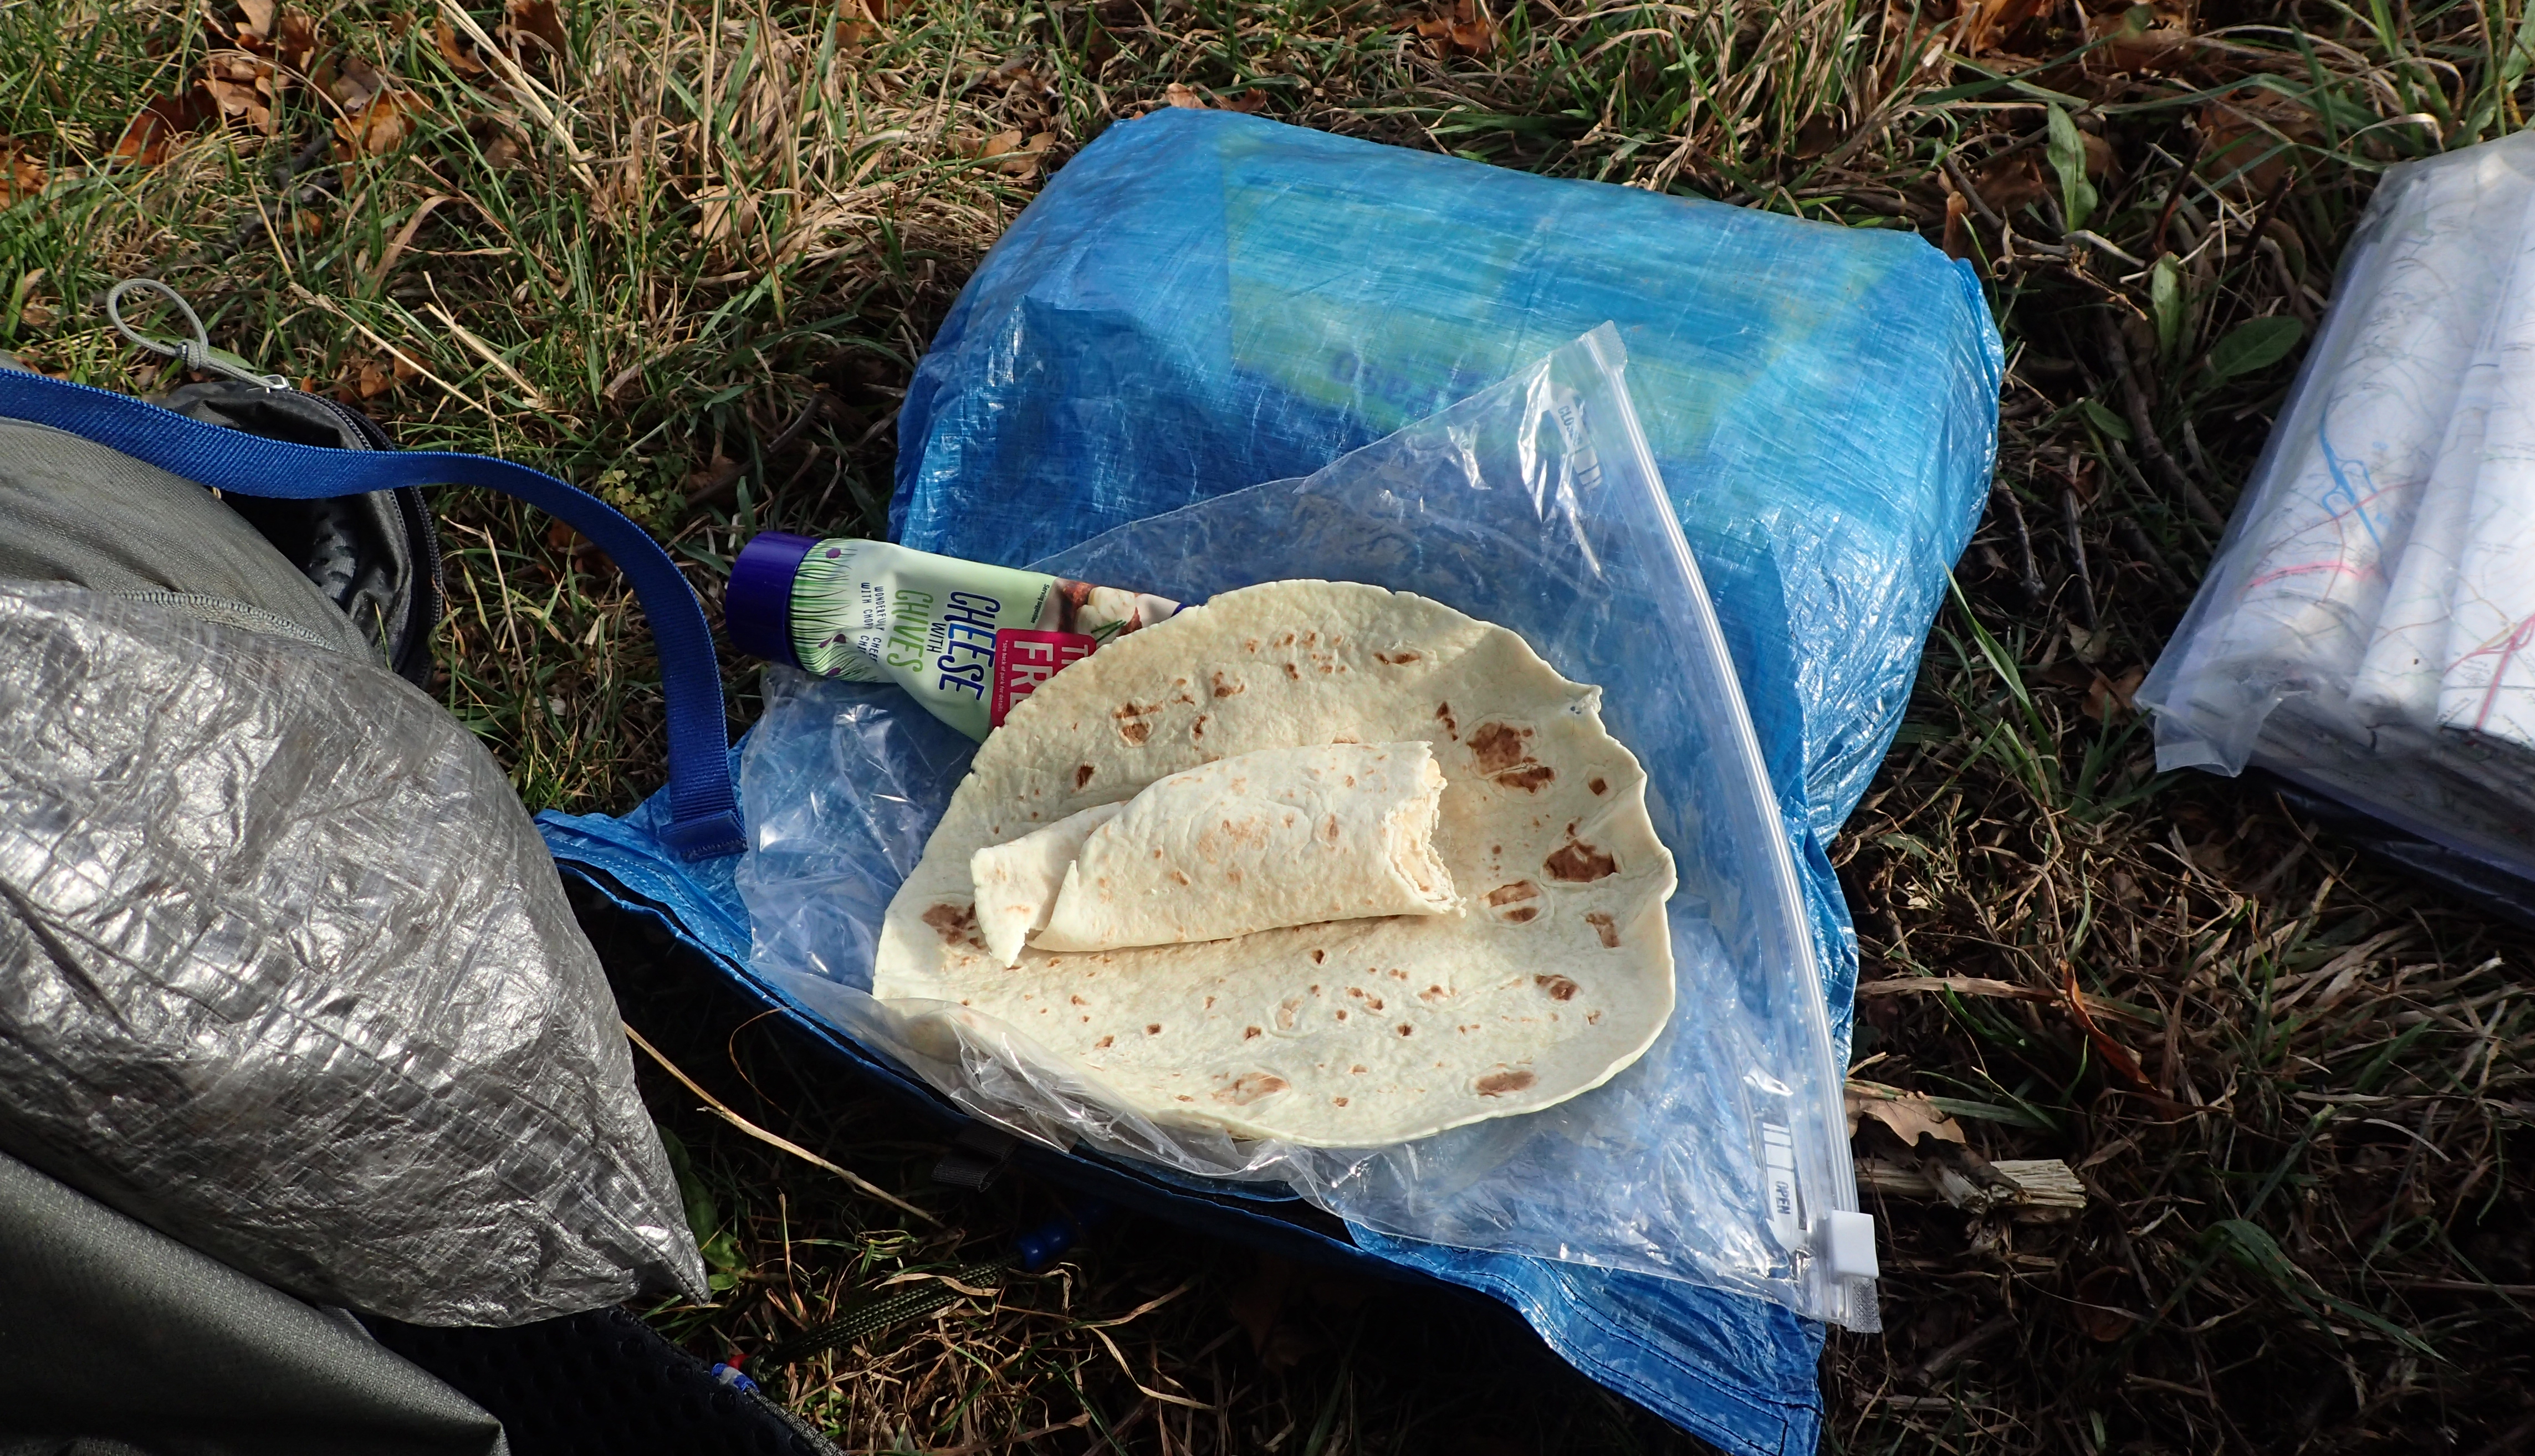 A basic lunch on trail